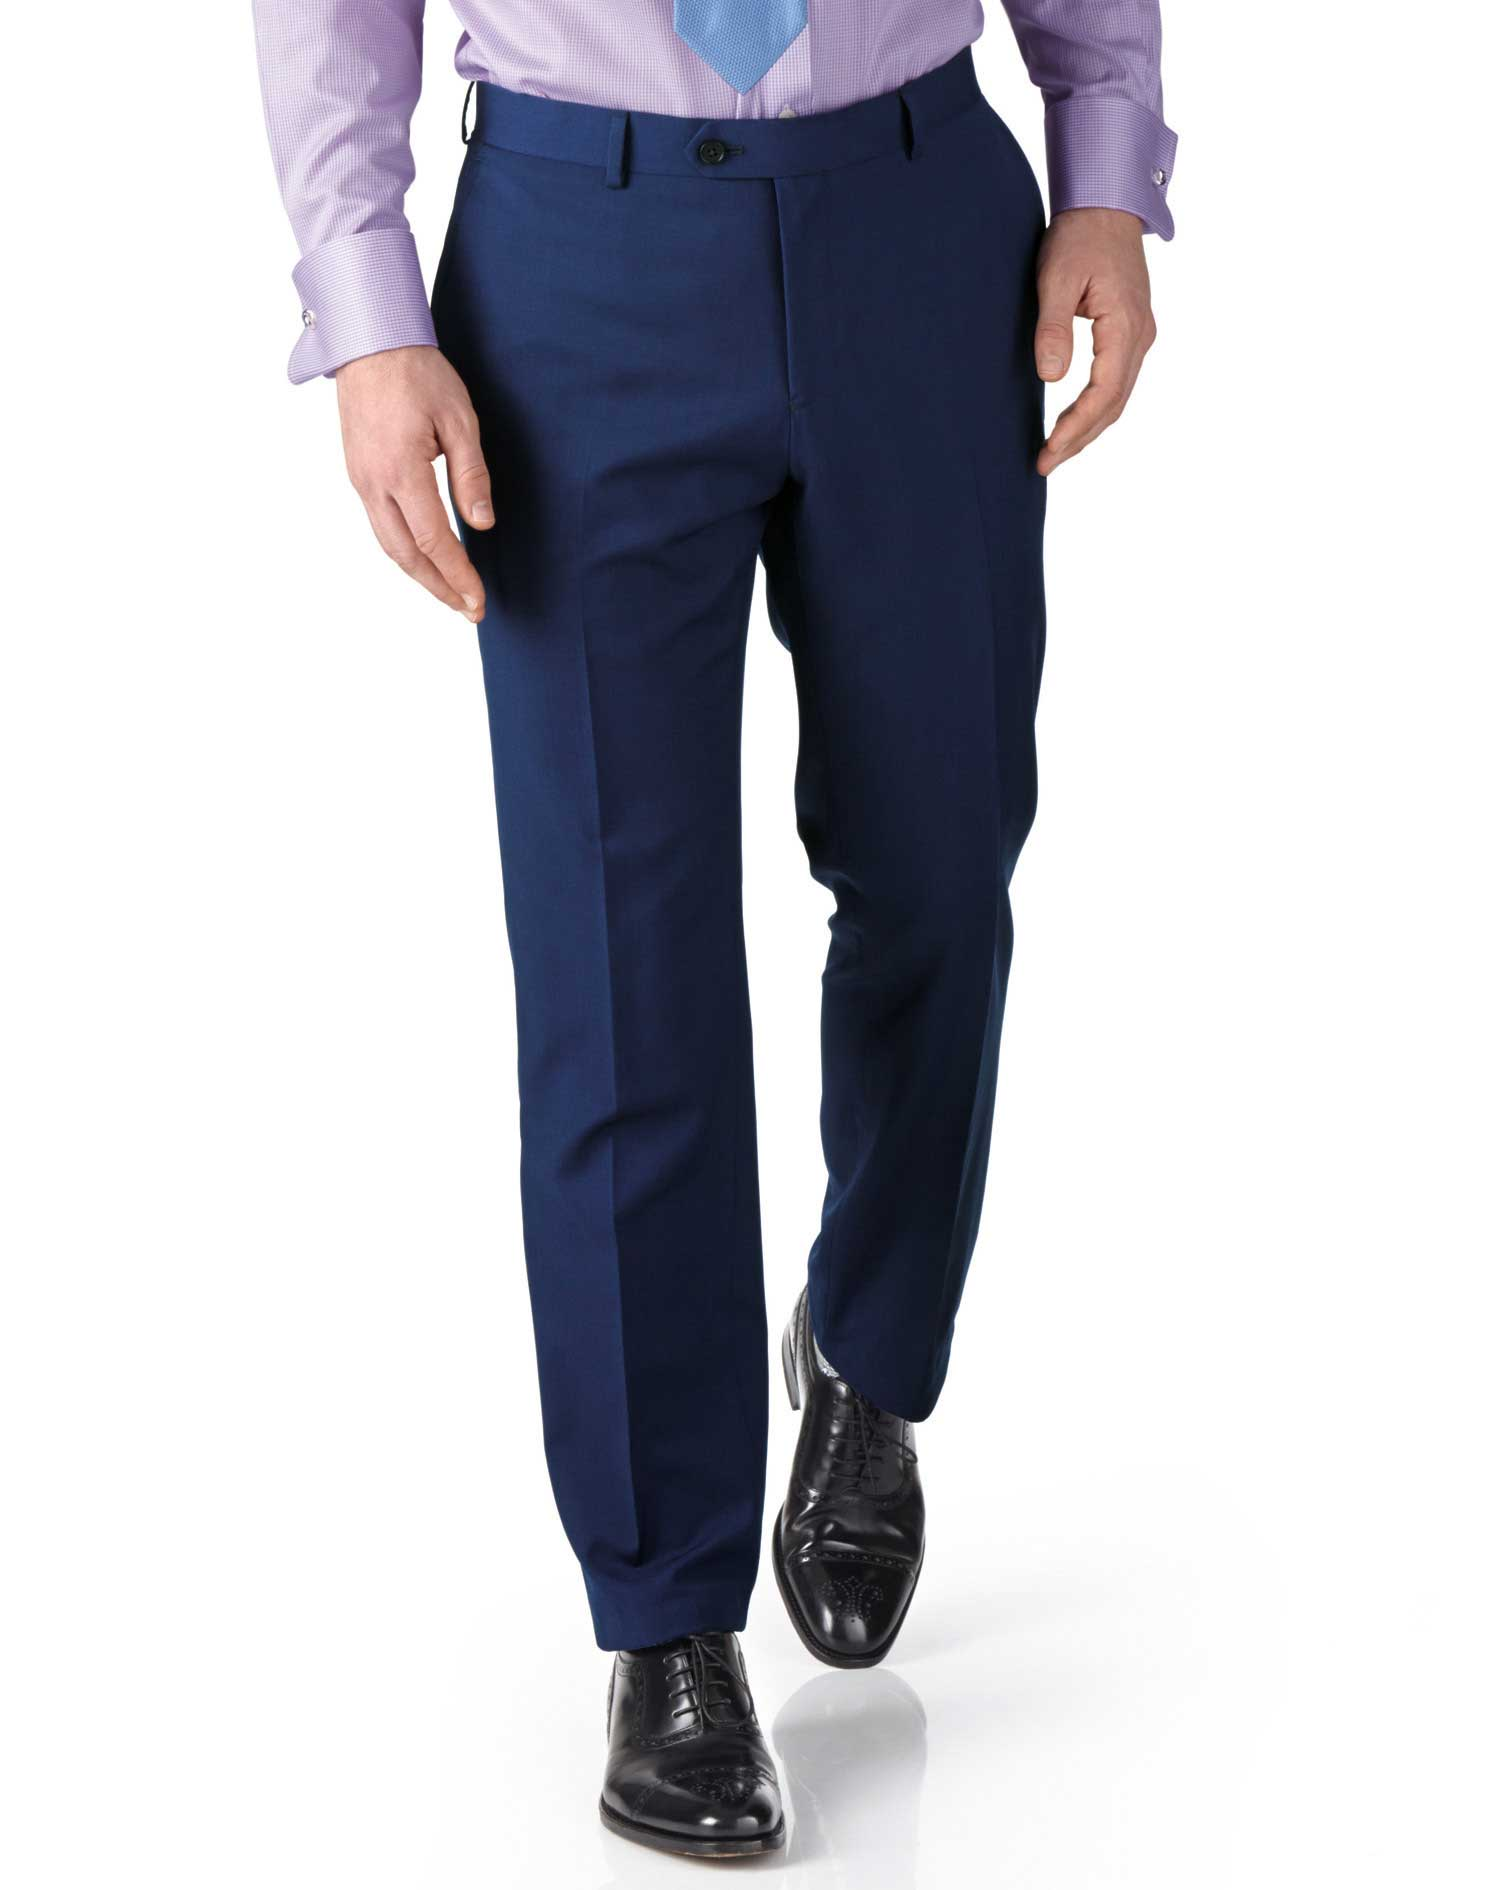 Royal Blue Extra Slim Fit Twill Business Suit Trouser Size W36 L38 by Charles Tyrwhitt